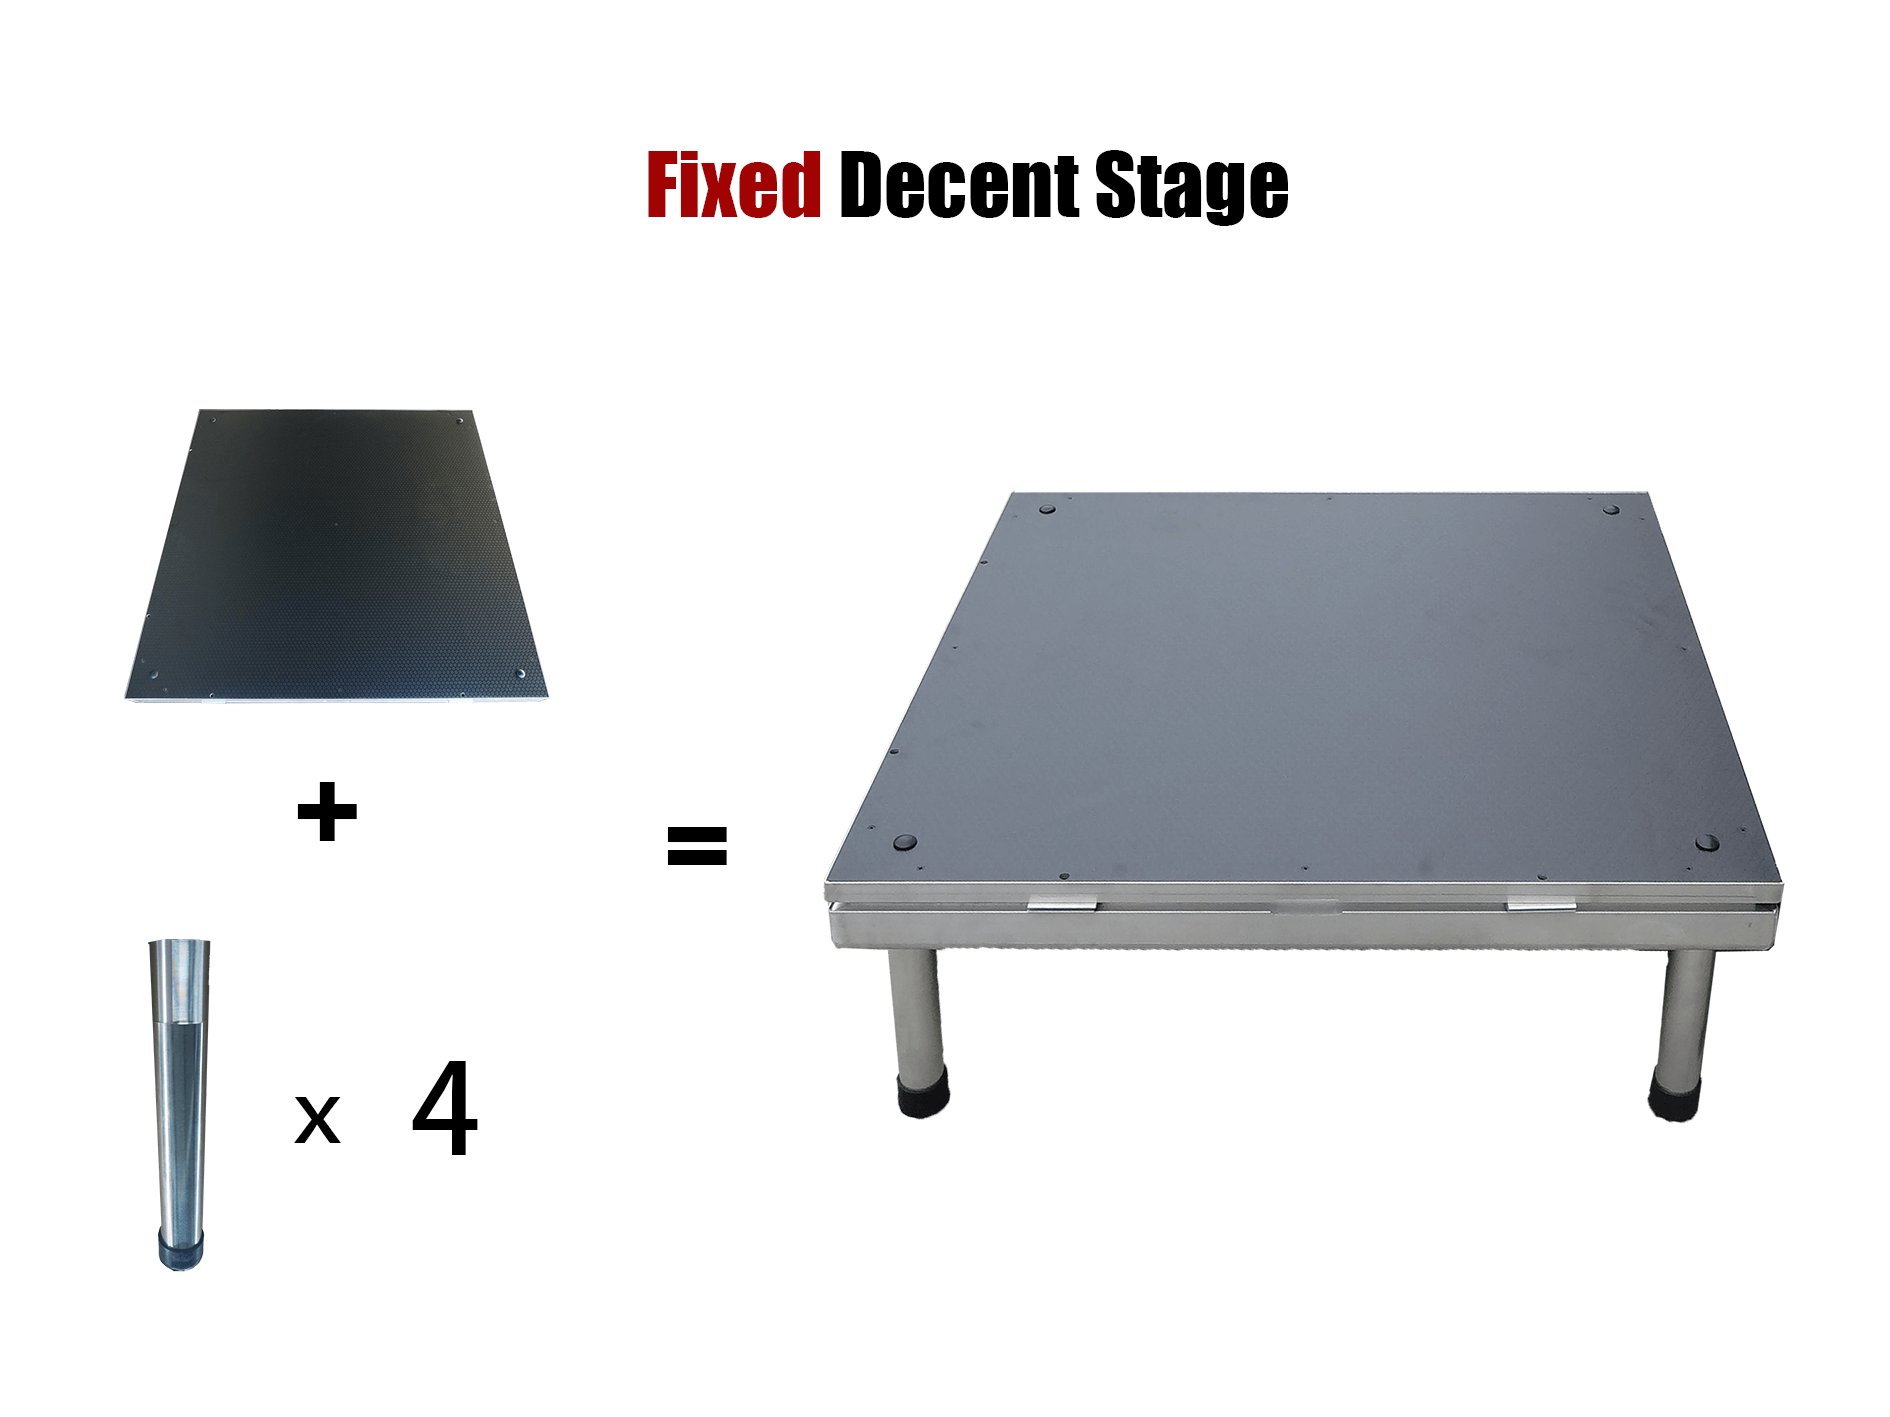 Fixed decent stage